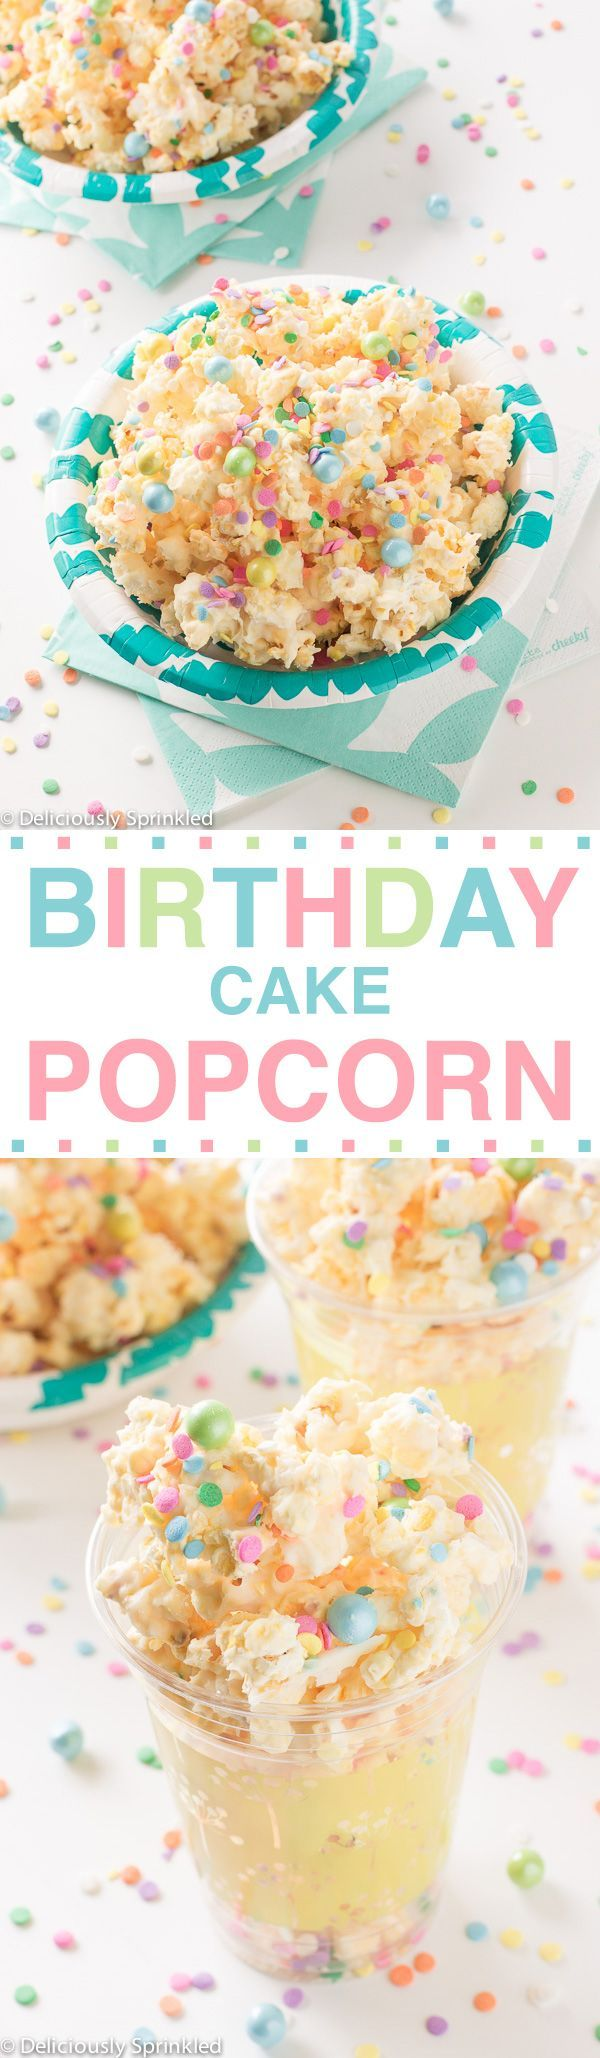 Best 25 Birthday cake flavors ideas on Pinterest Cake flavors